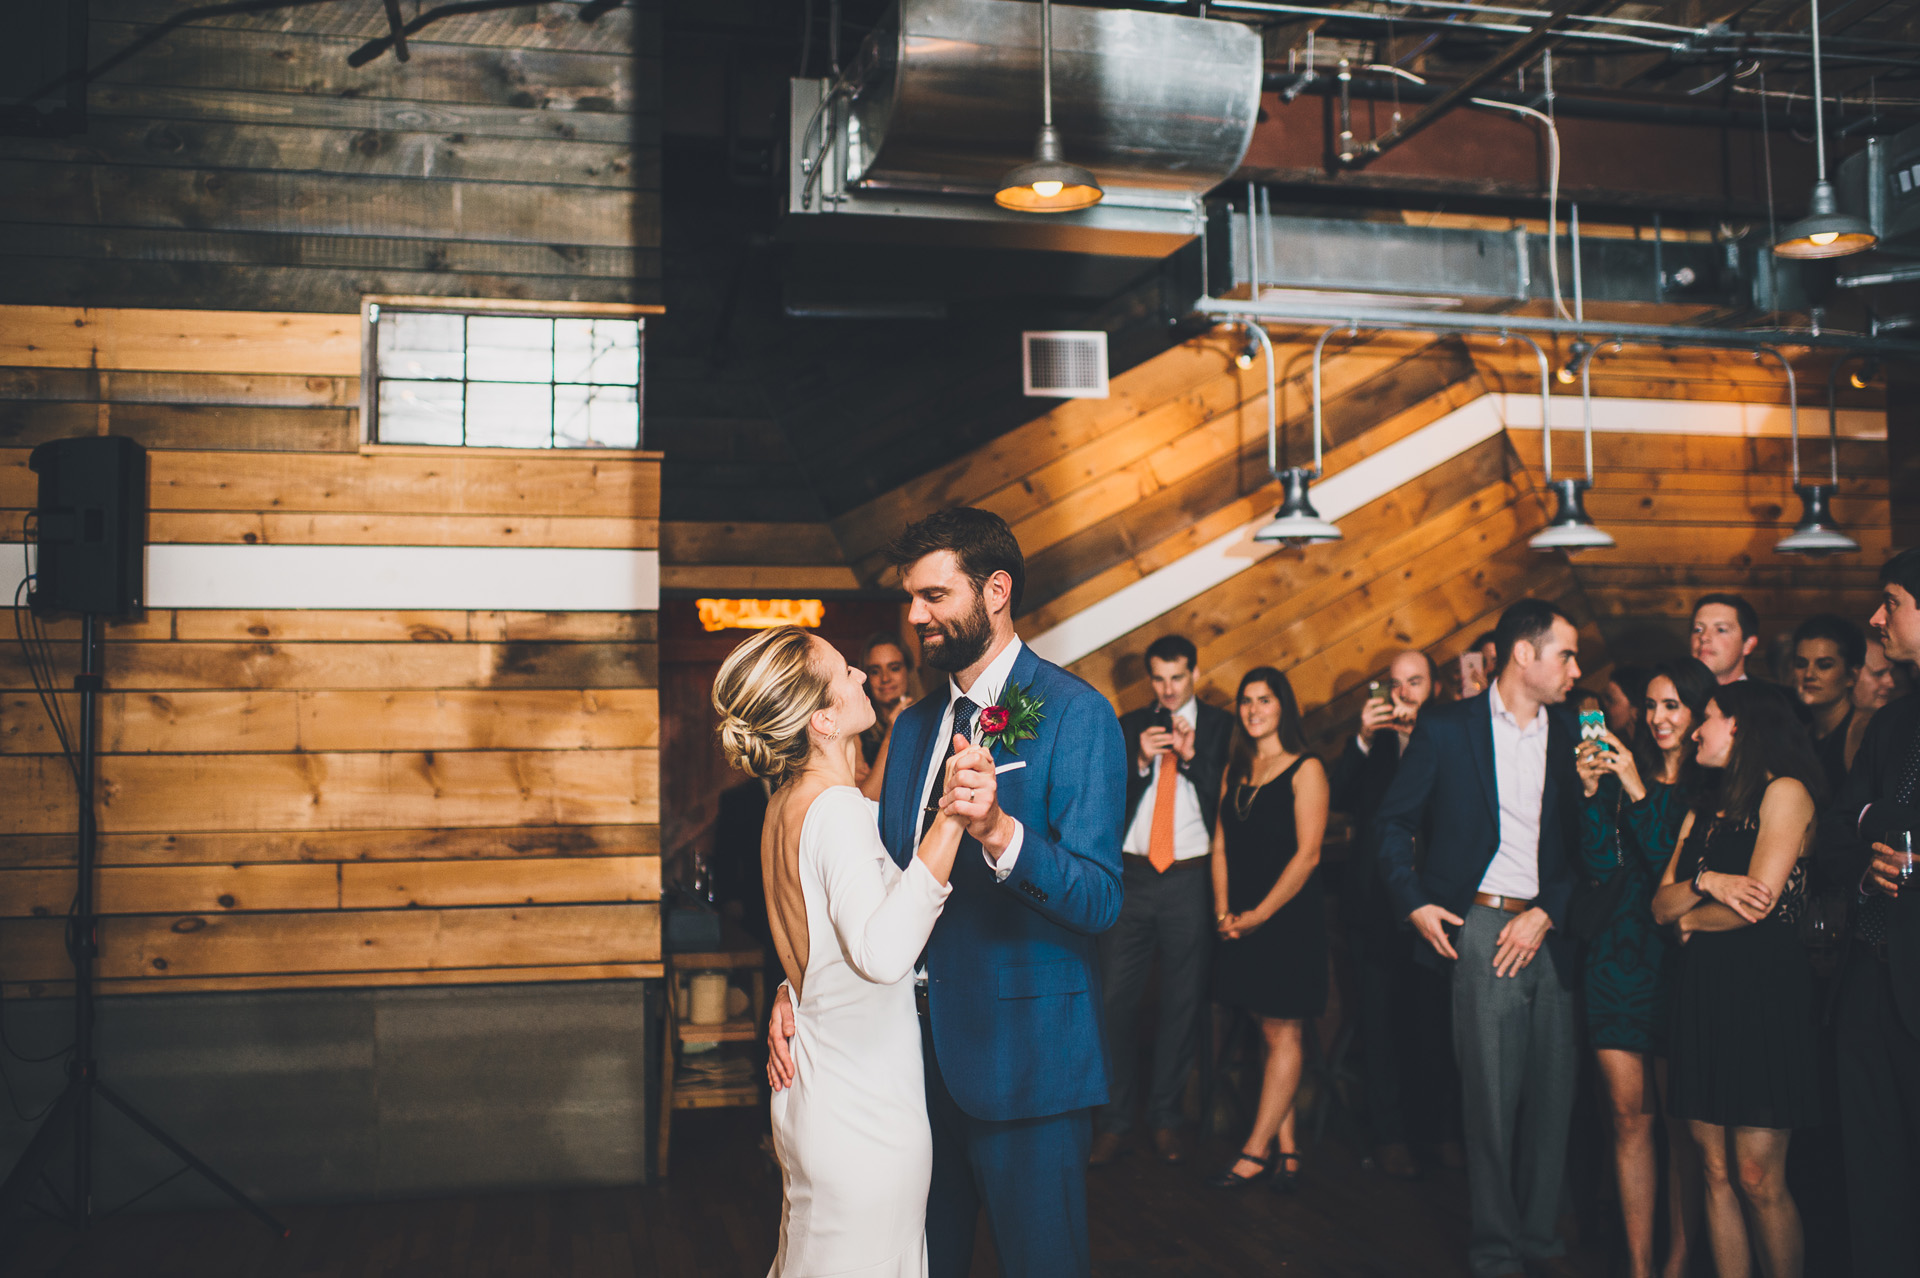 la-brasa-somerville-wedding-431